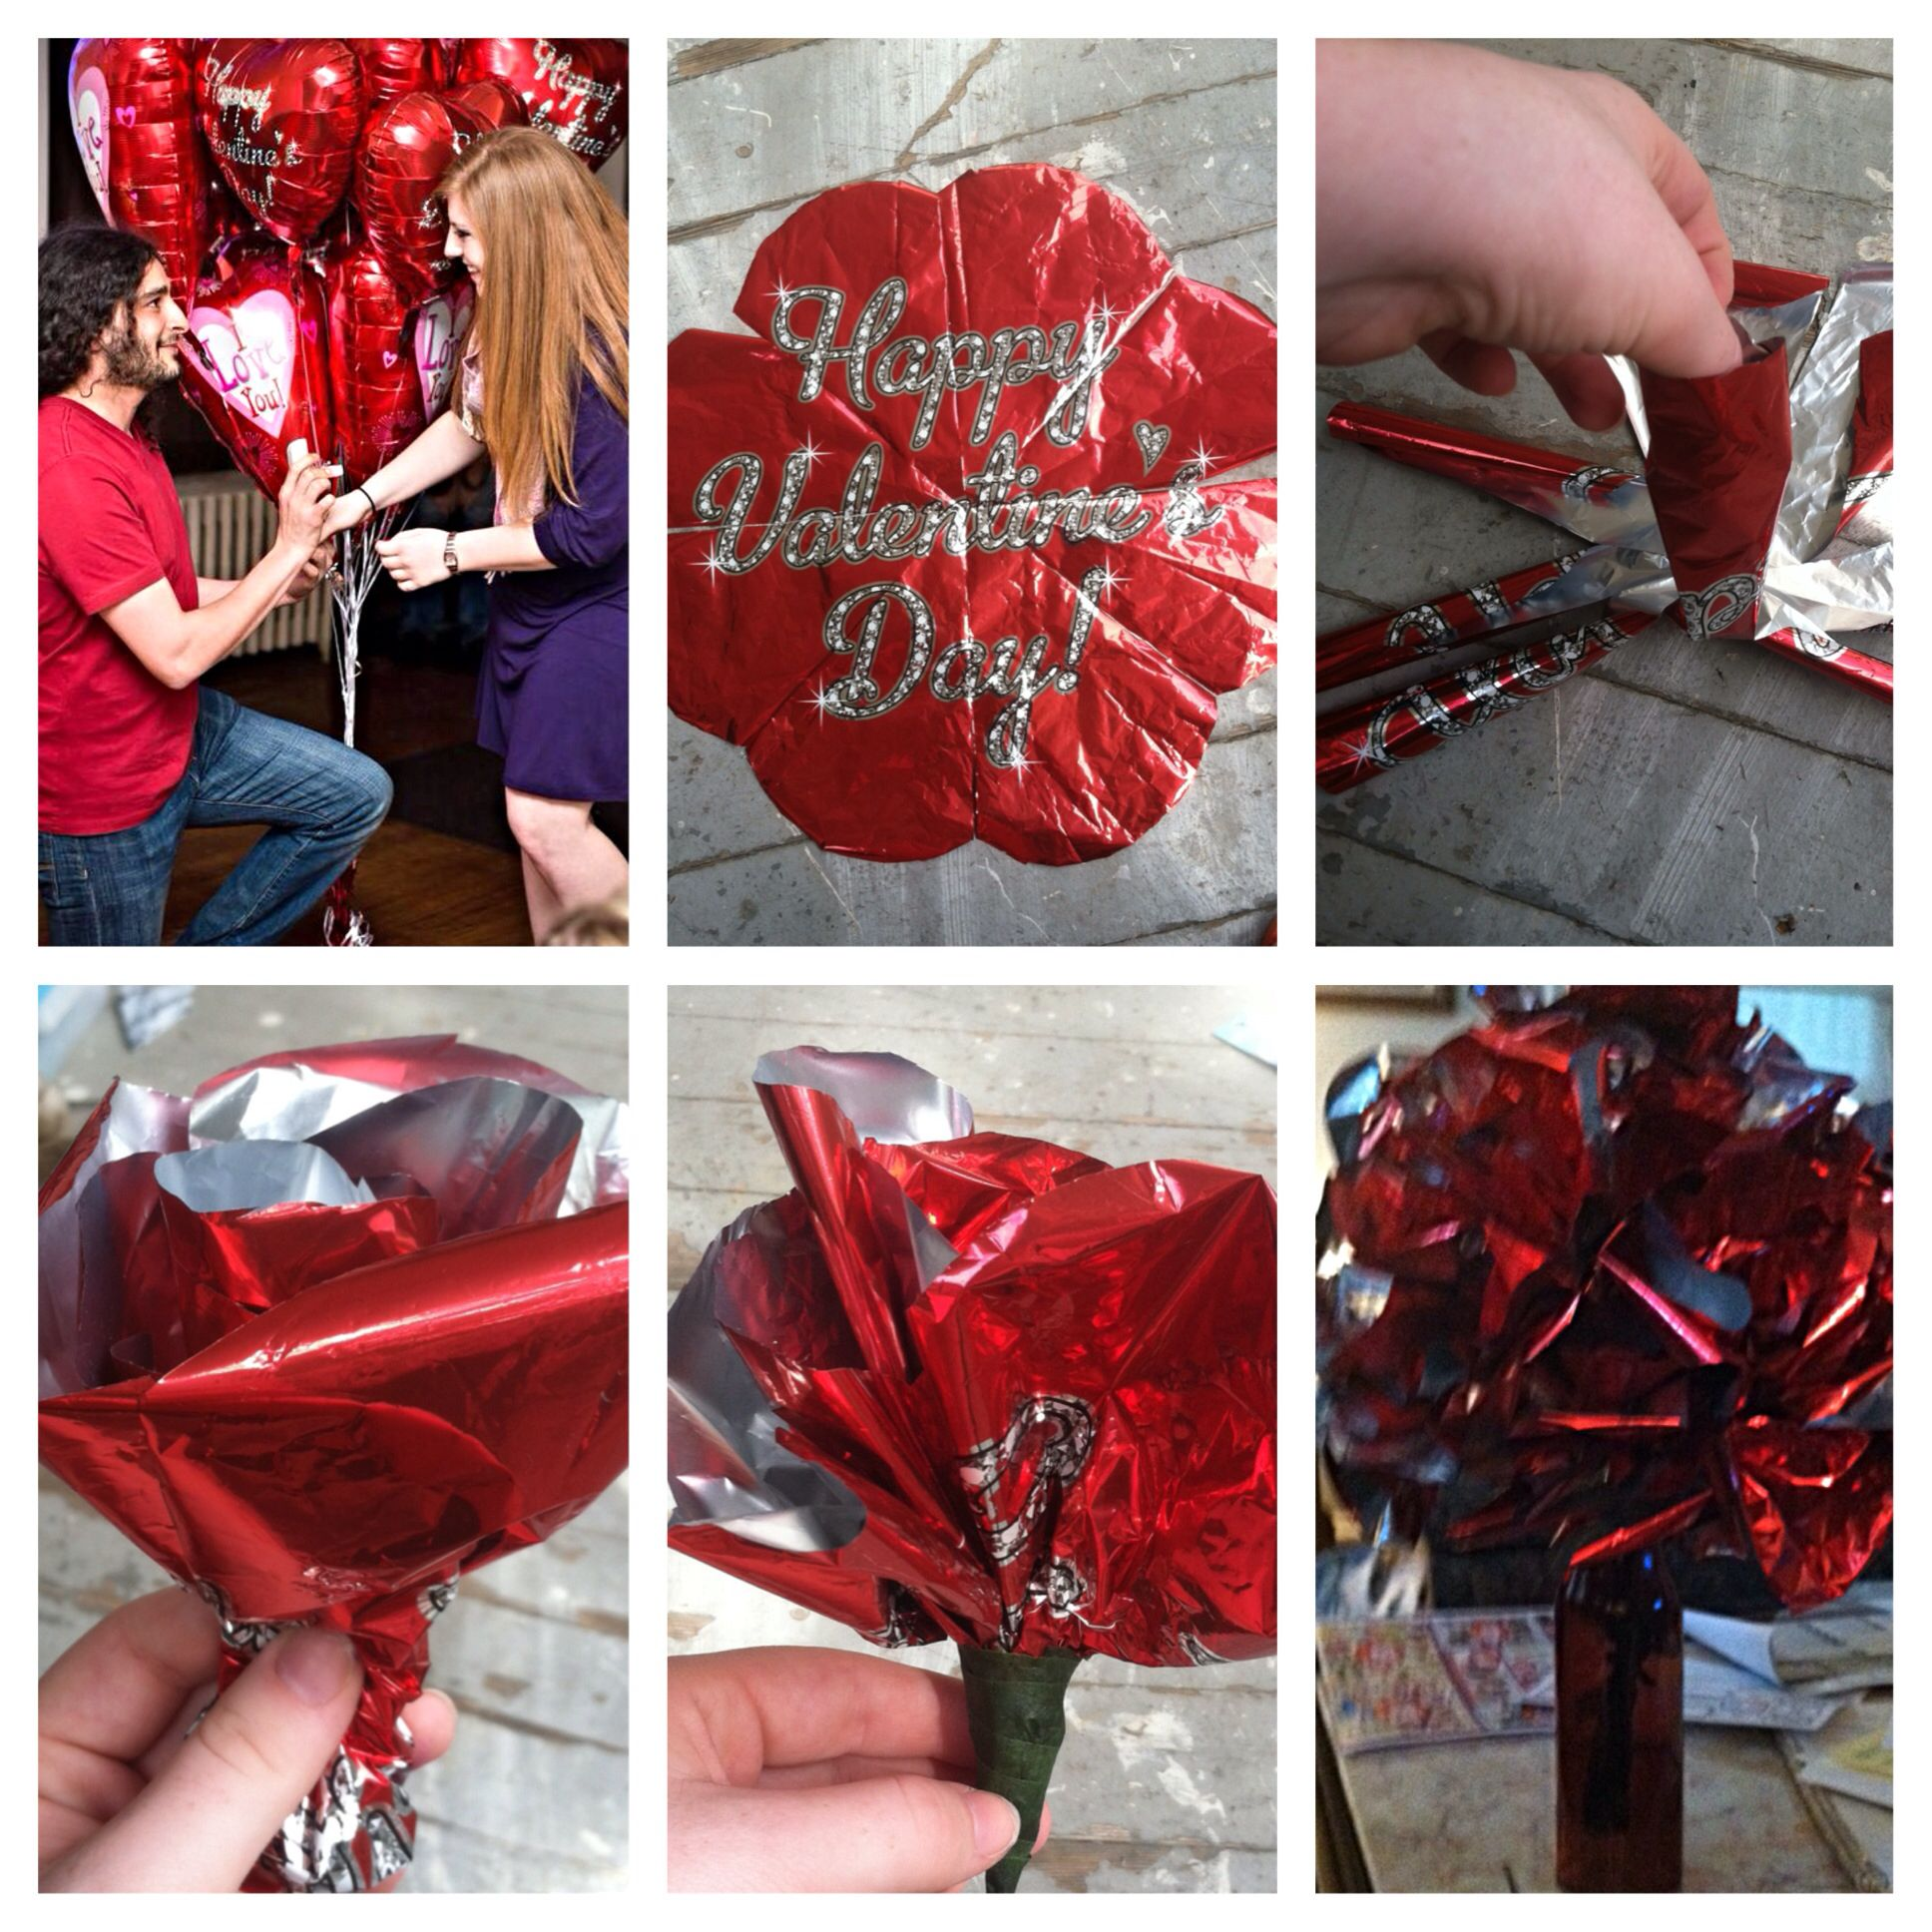 Turn you bouquet of balloons into flowers! 1. Fold the balloon in eighths and cut a rounded edge. 2. Unfold and cut along the ceases a half inch from center. 3. Fold in the ballon strips wrapping them around each other like a bud. 4. Tape to secure and attach to wire or pipe cleaners. 5. Arrange in a vase.